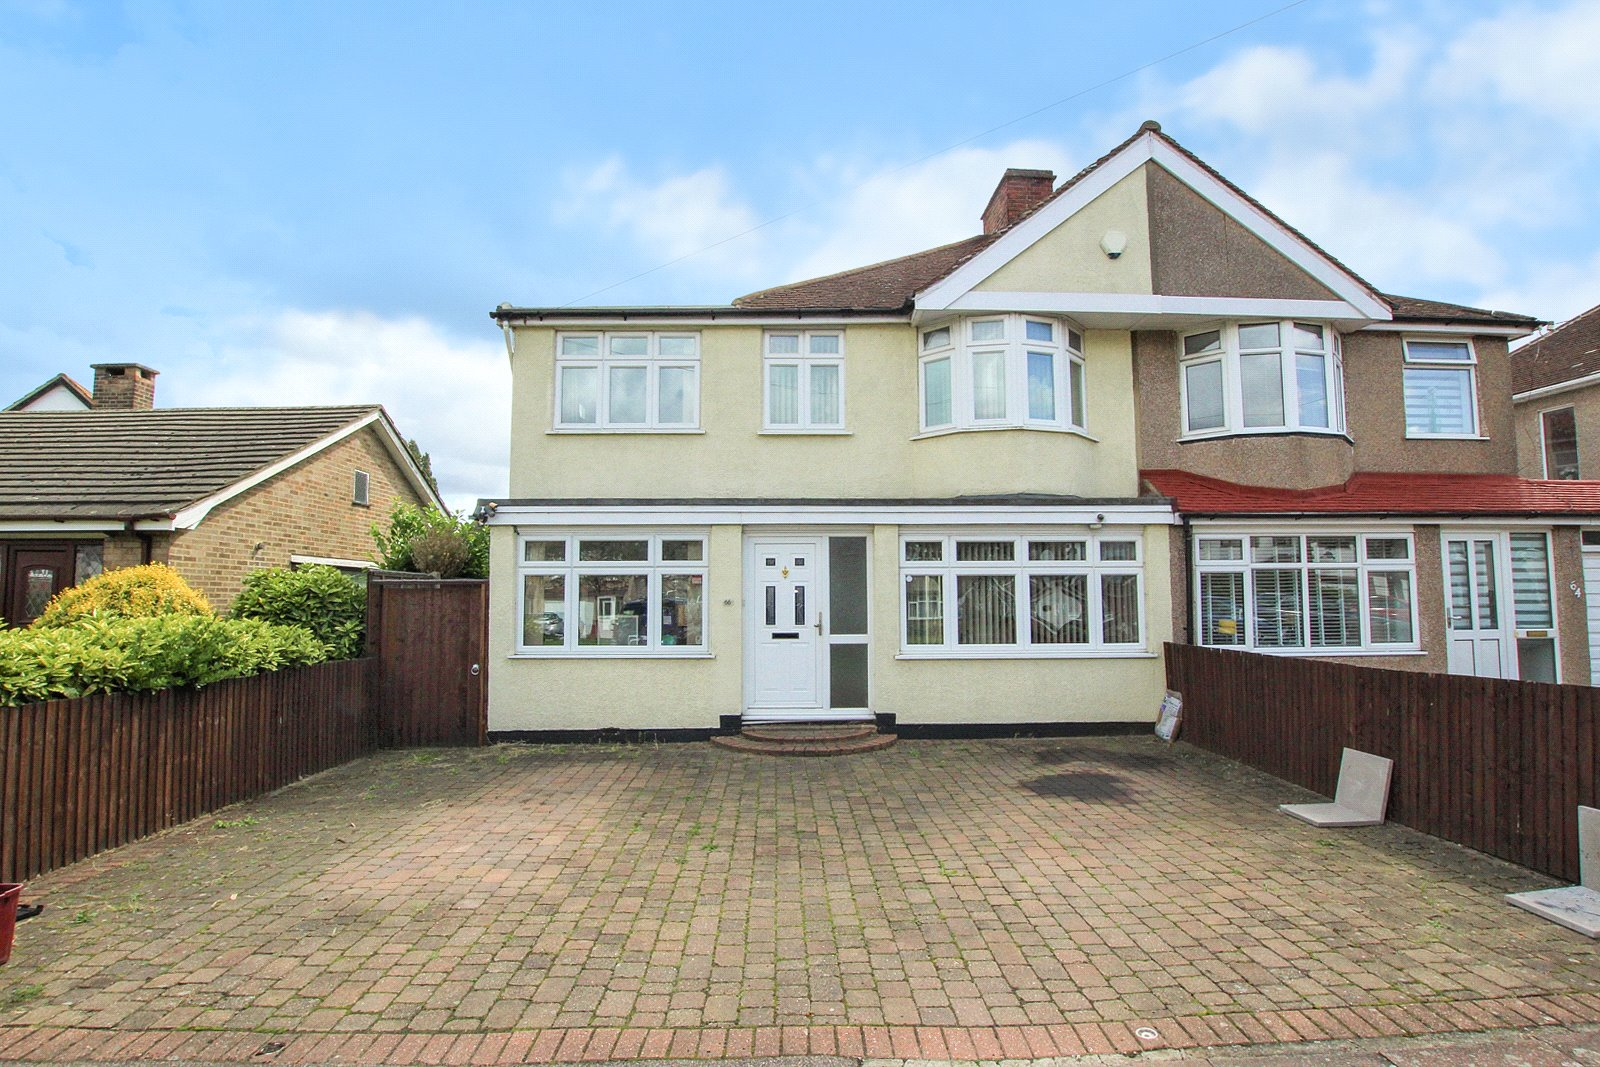 Willersley Avenue, Sidcup, Kent, DA15